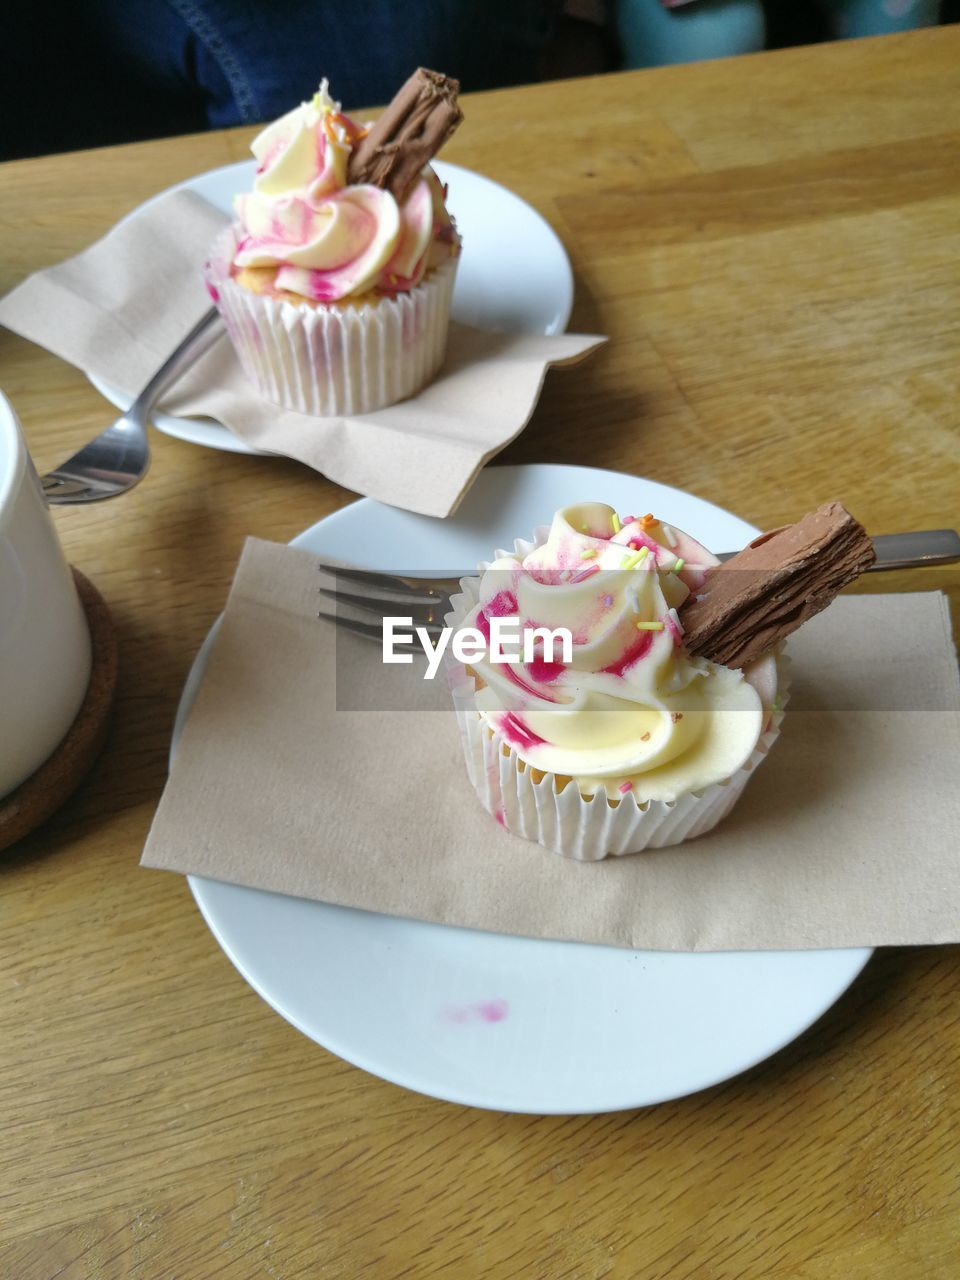 sweet food, cupcake, food and drink, dessert, table, indulgence, food, unhealthy eating, temptation, sprinkles, freshness, wood - material, indoors, cake, whipped cream, ready-to-eat, no people, plate, high angle view, serving size, cream, close-up, day